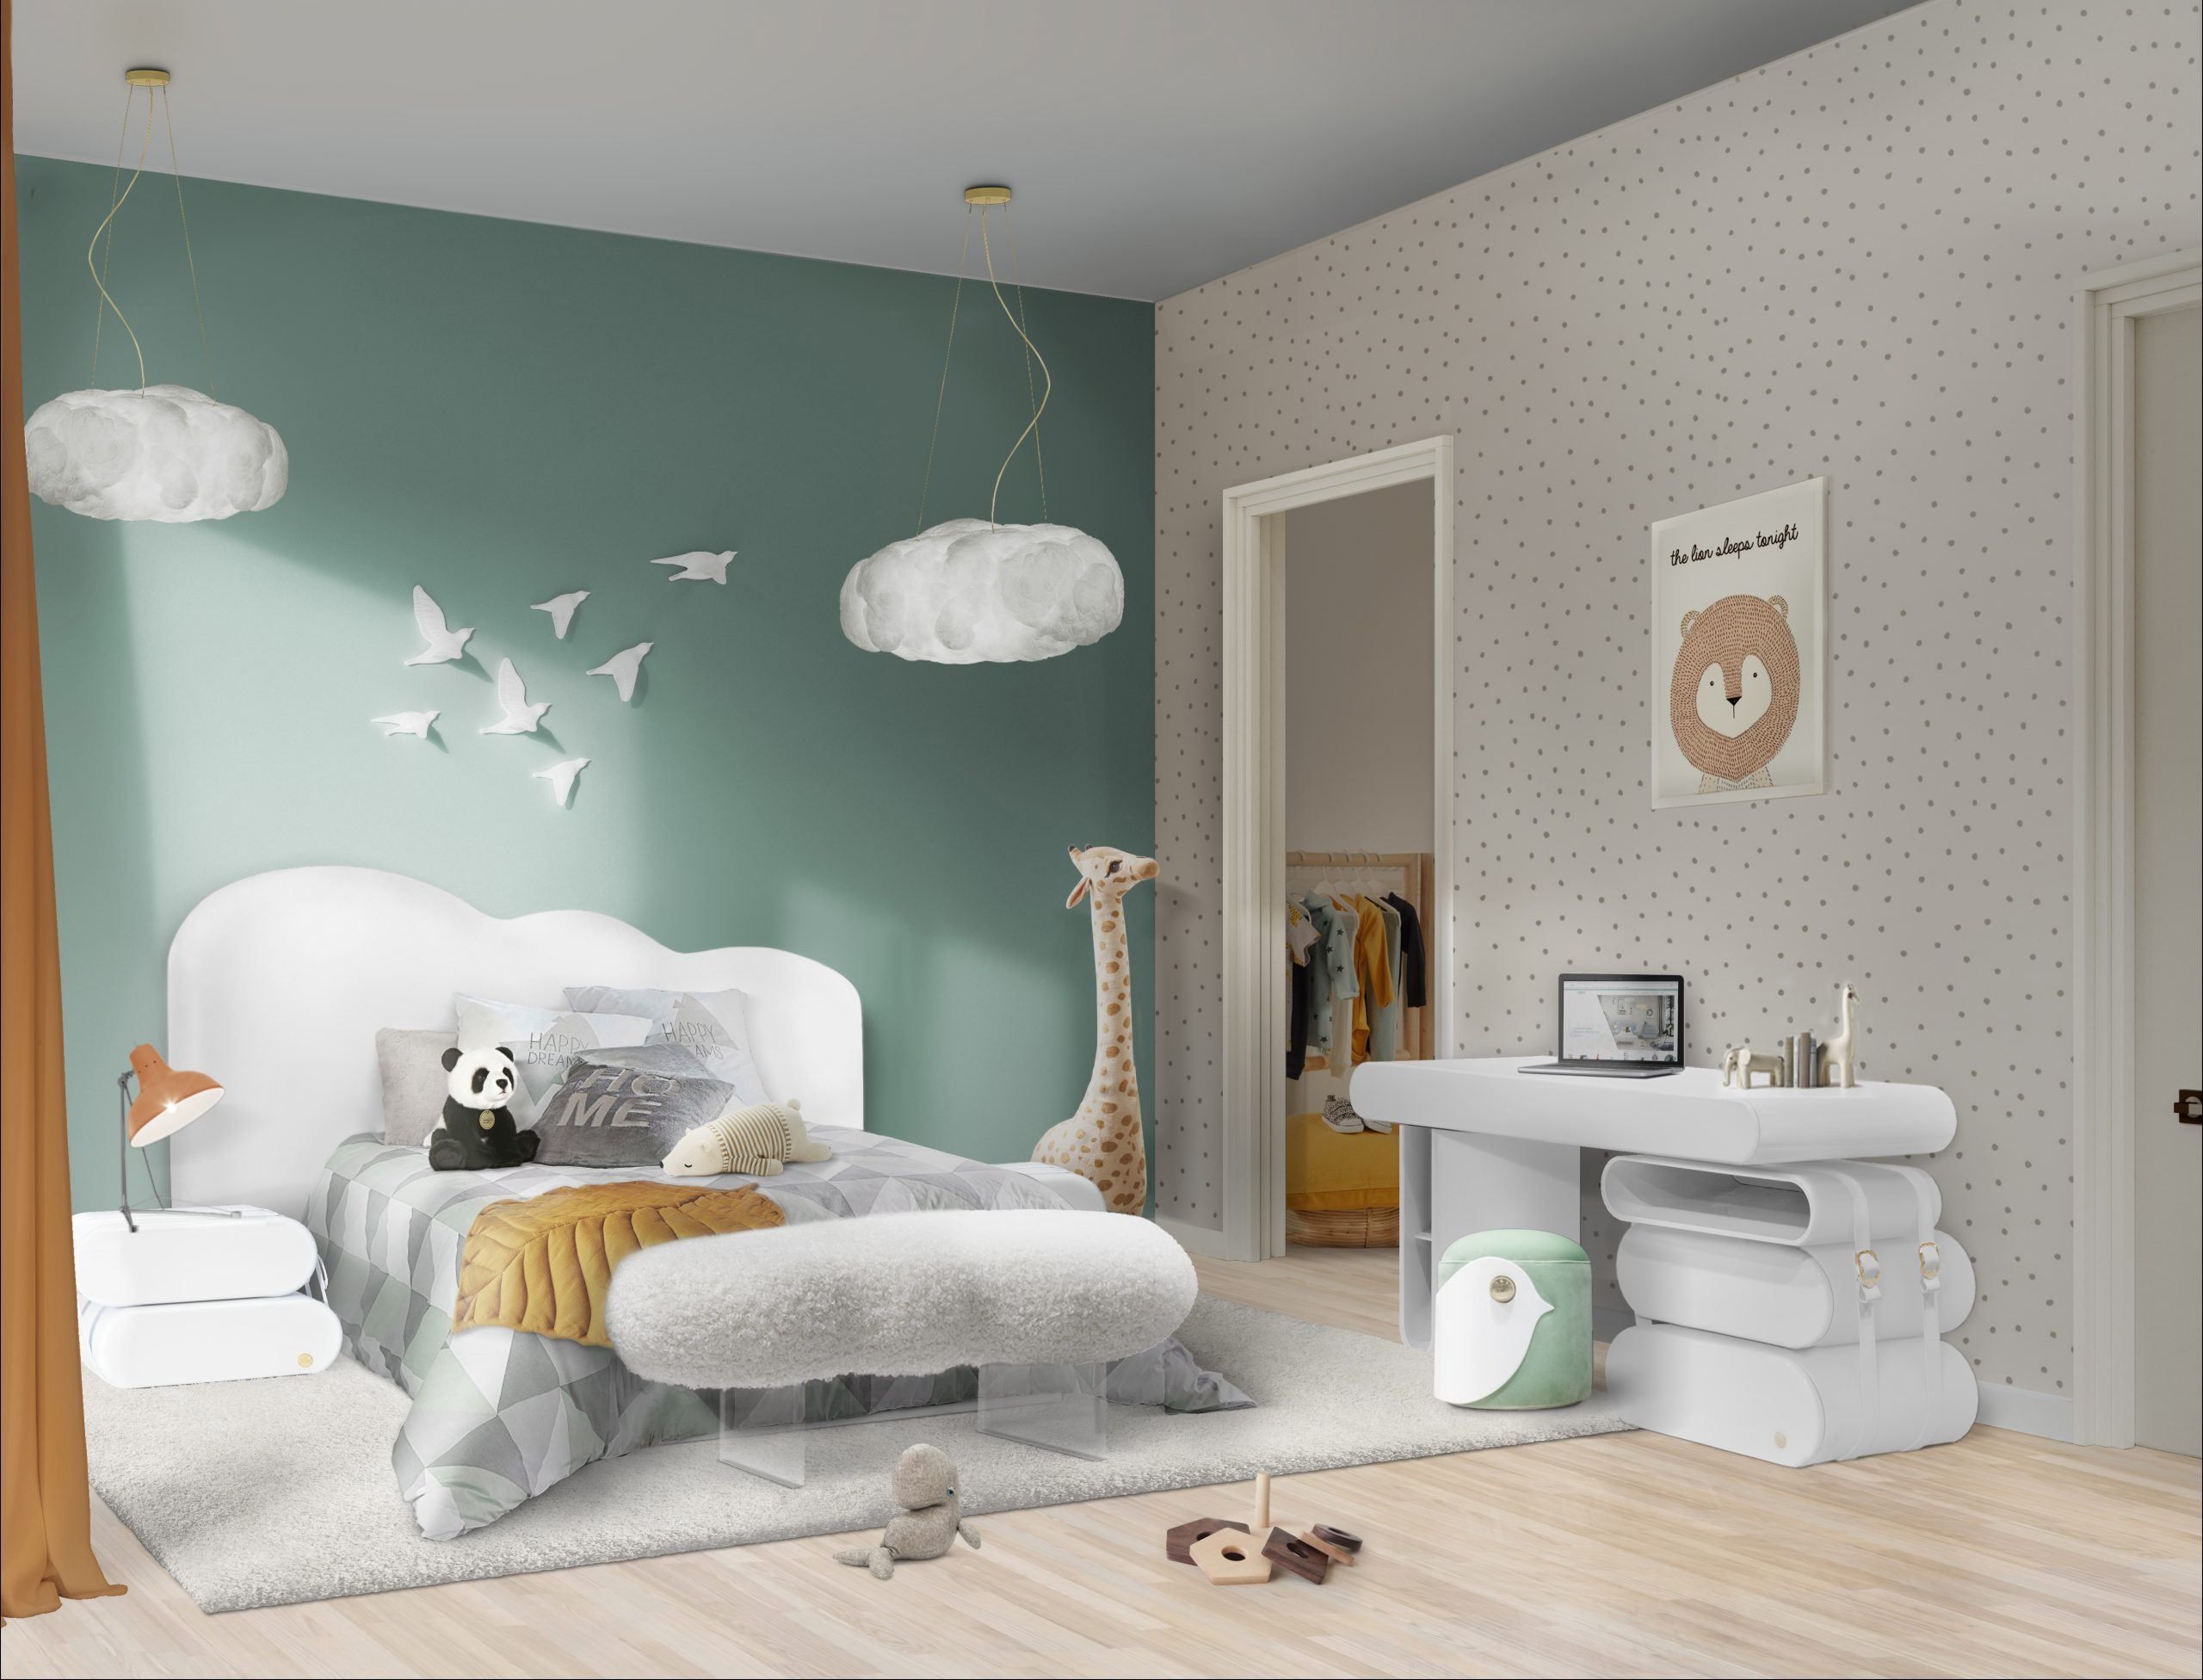 kids-bedroom-decor-cloud-collection-milk-white-circu-magical-furniture